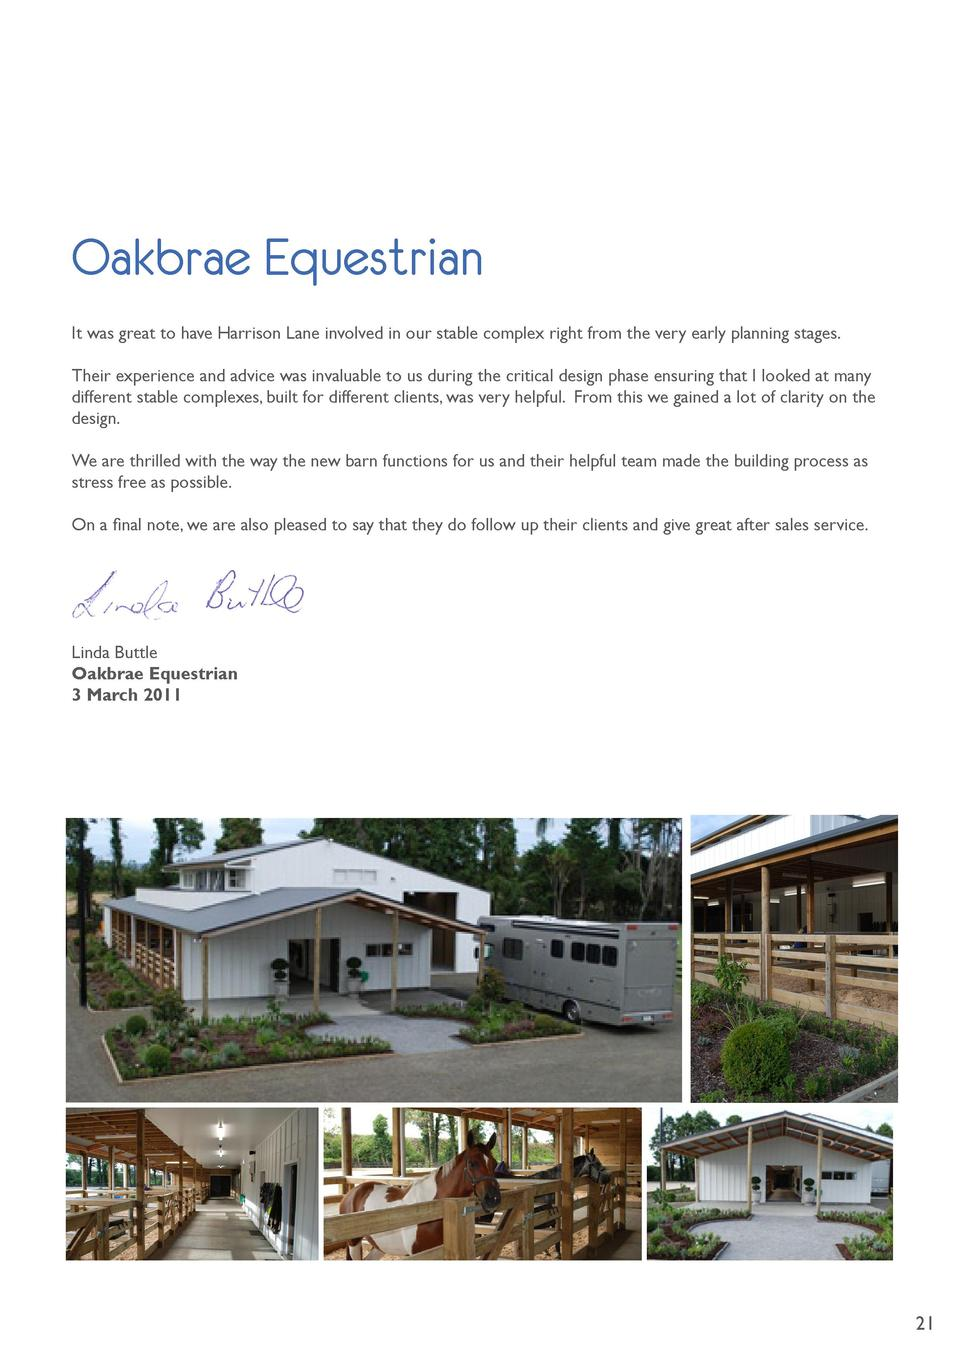 Oakbrae Equestrian It was great to have Harrison Lane involved in our stable complex right from the very...